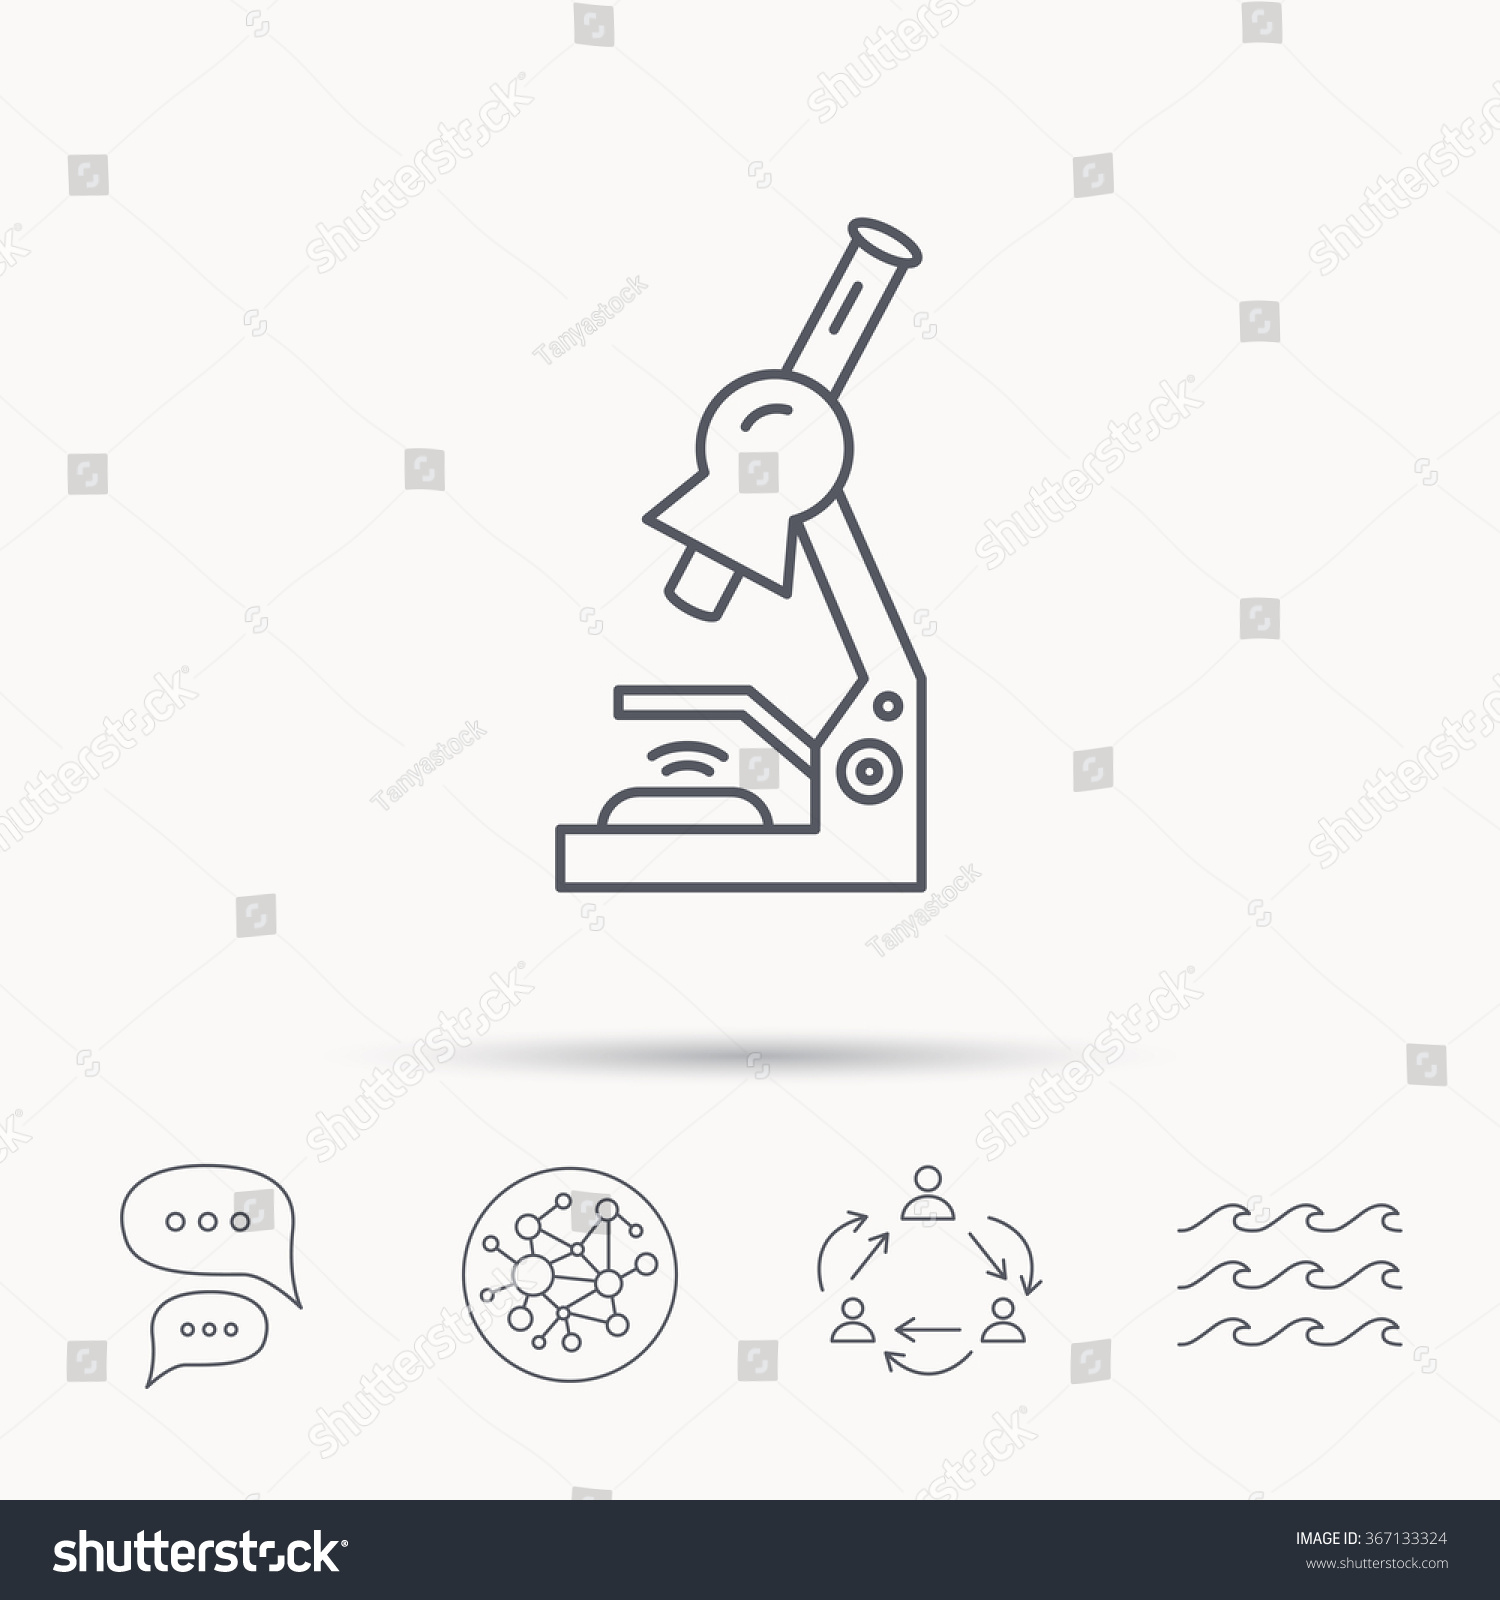 Microscope icon medical laboratory equipment sign em vetor stock microscope icon medical laboratory equipment sign pathology or scientific symbol global connect network ccuart Gallery